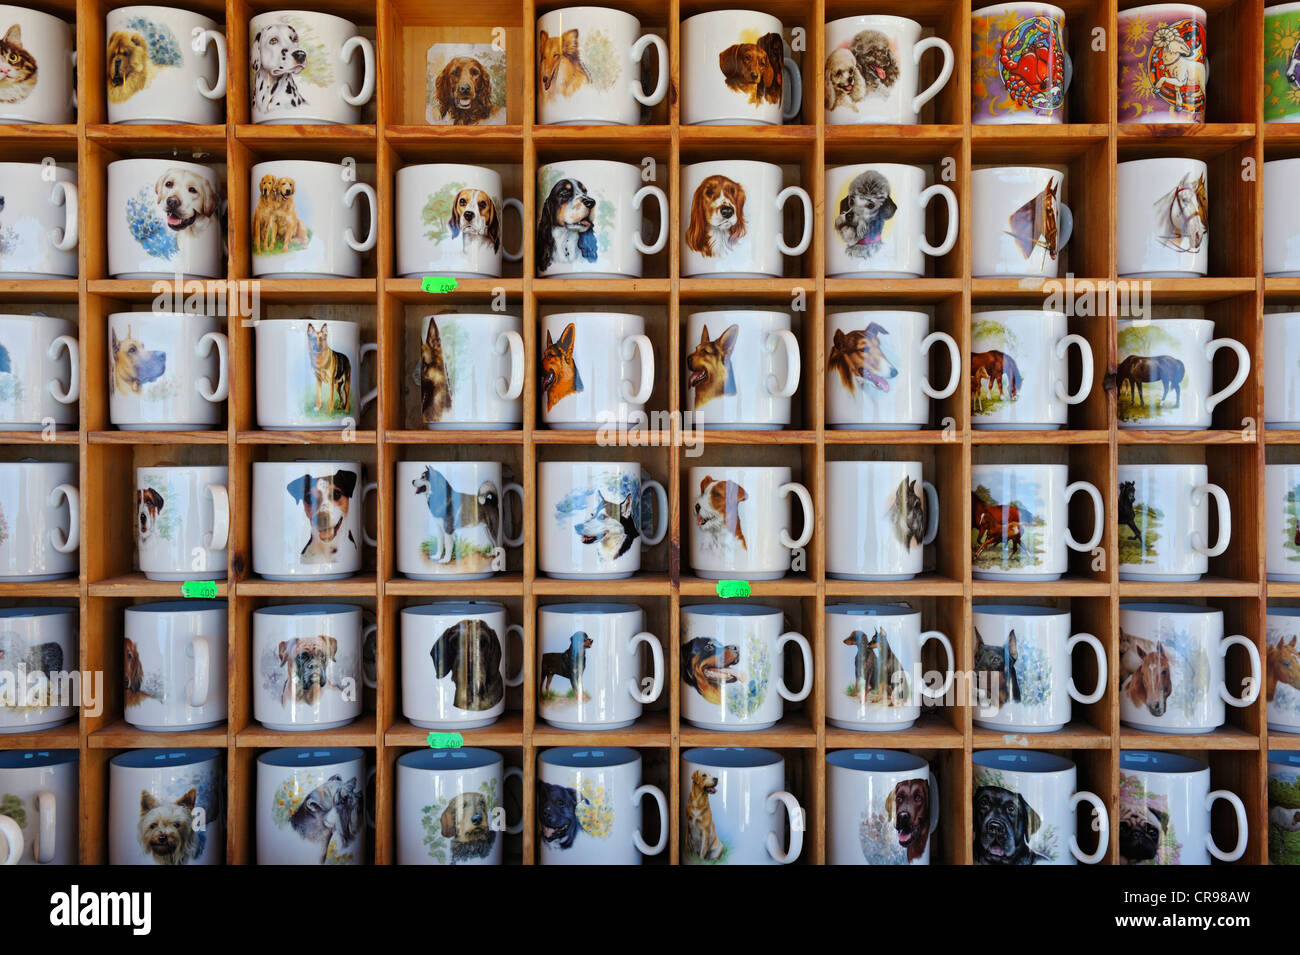 Cups printed with animal motifs, Auer Dult market, Munich, Bavaria, Germany, Europe - Stock Image